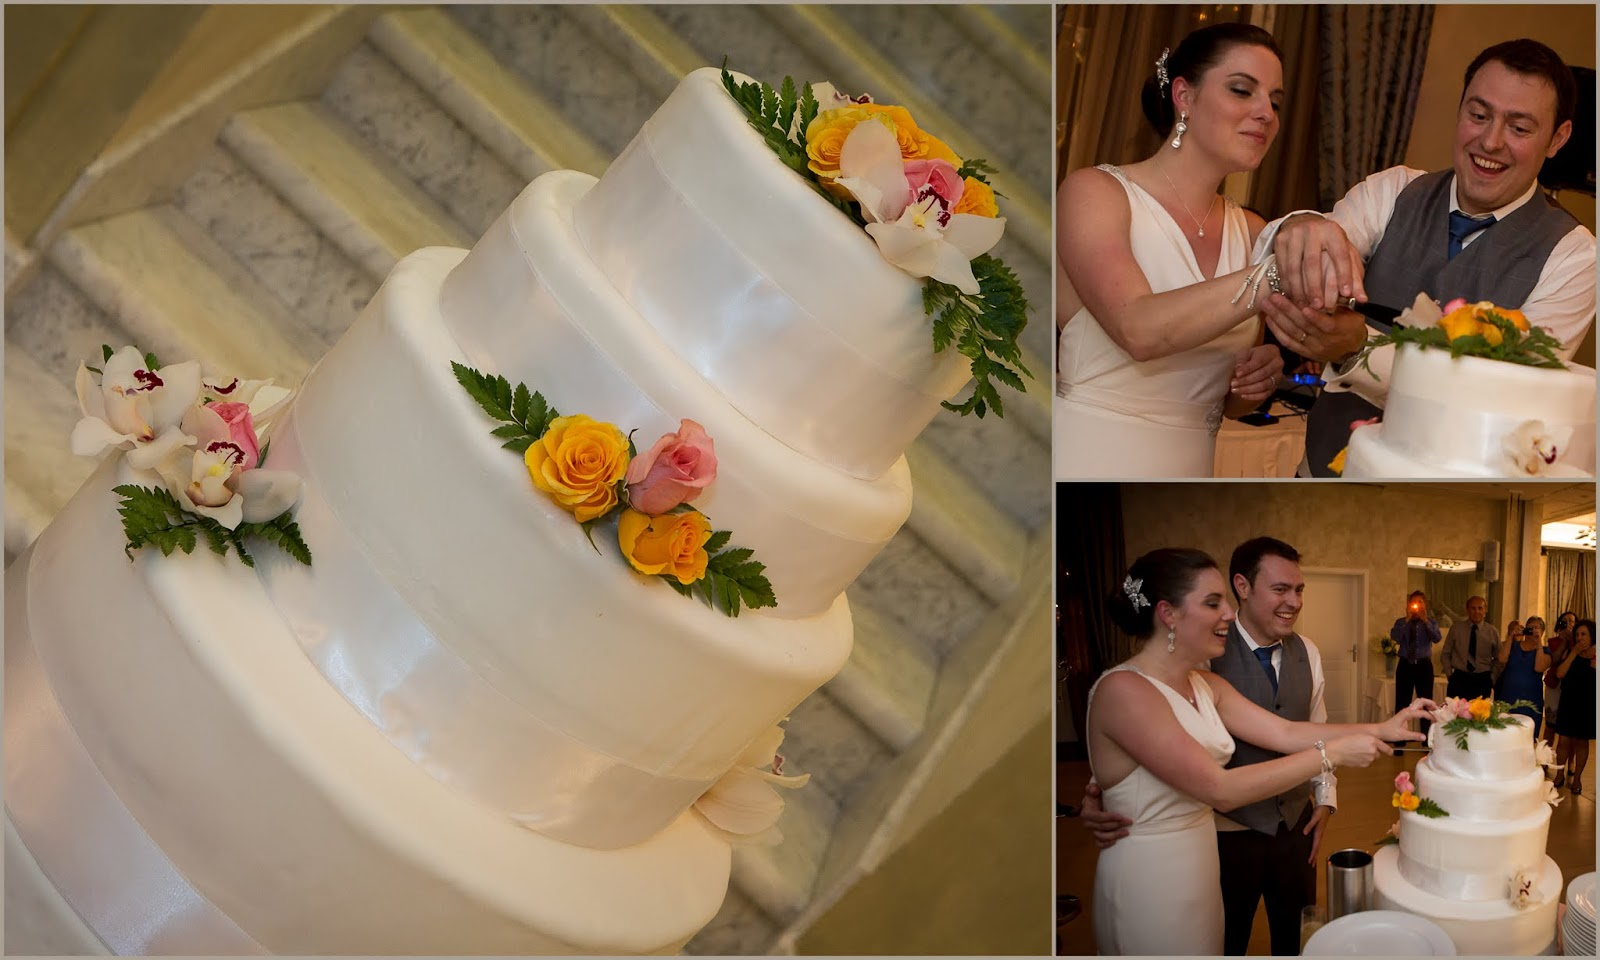 Dubrovnik wedding cake